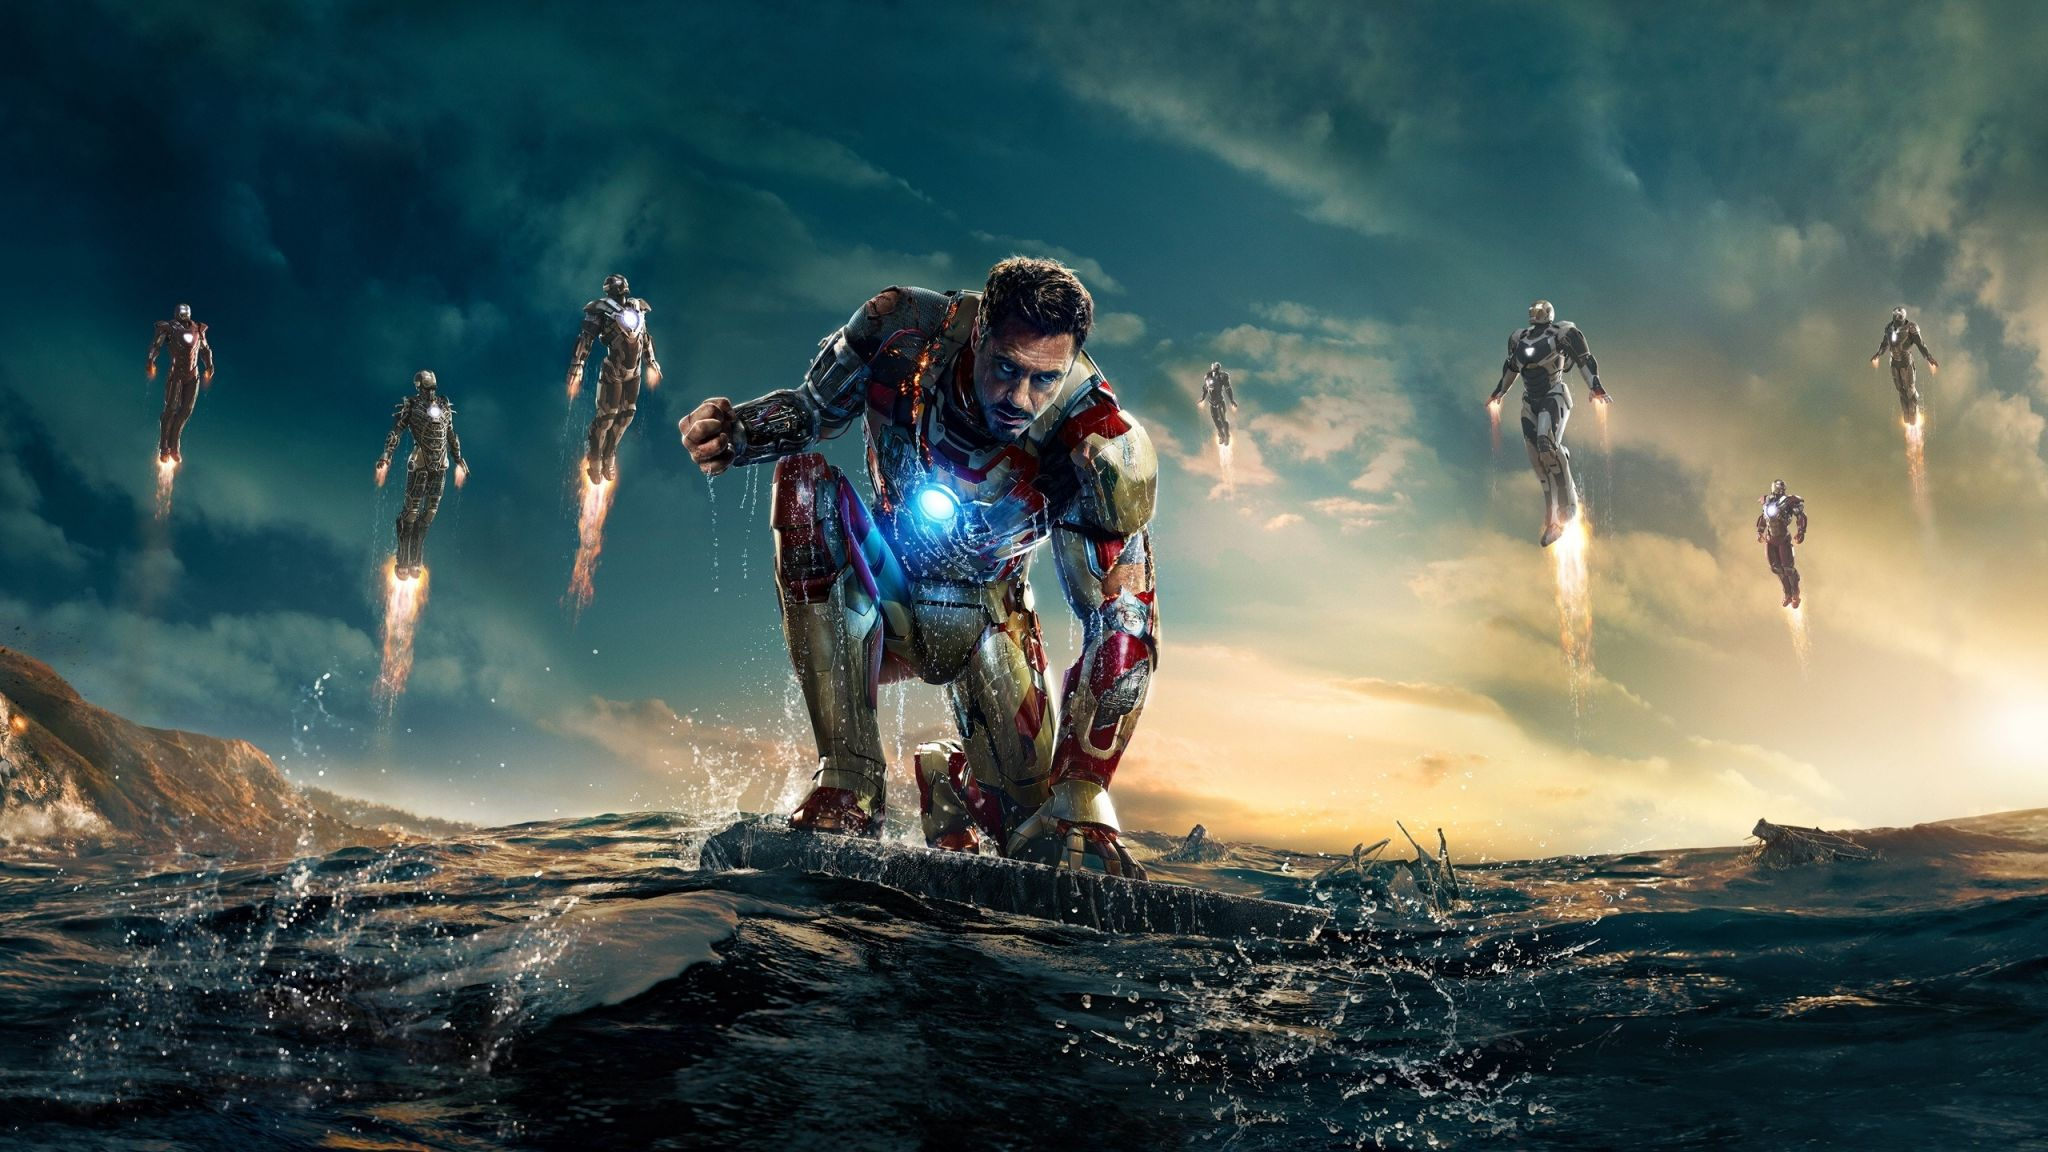 Iron Man Background Wallpaper For Computer Free